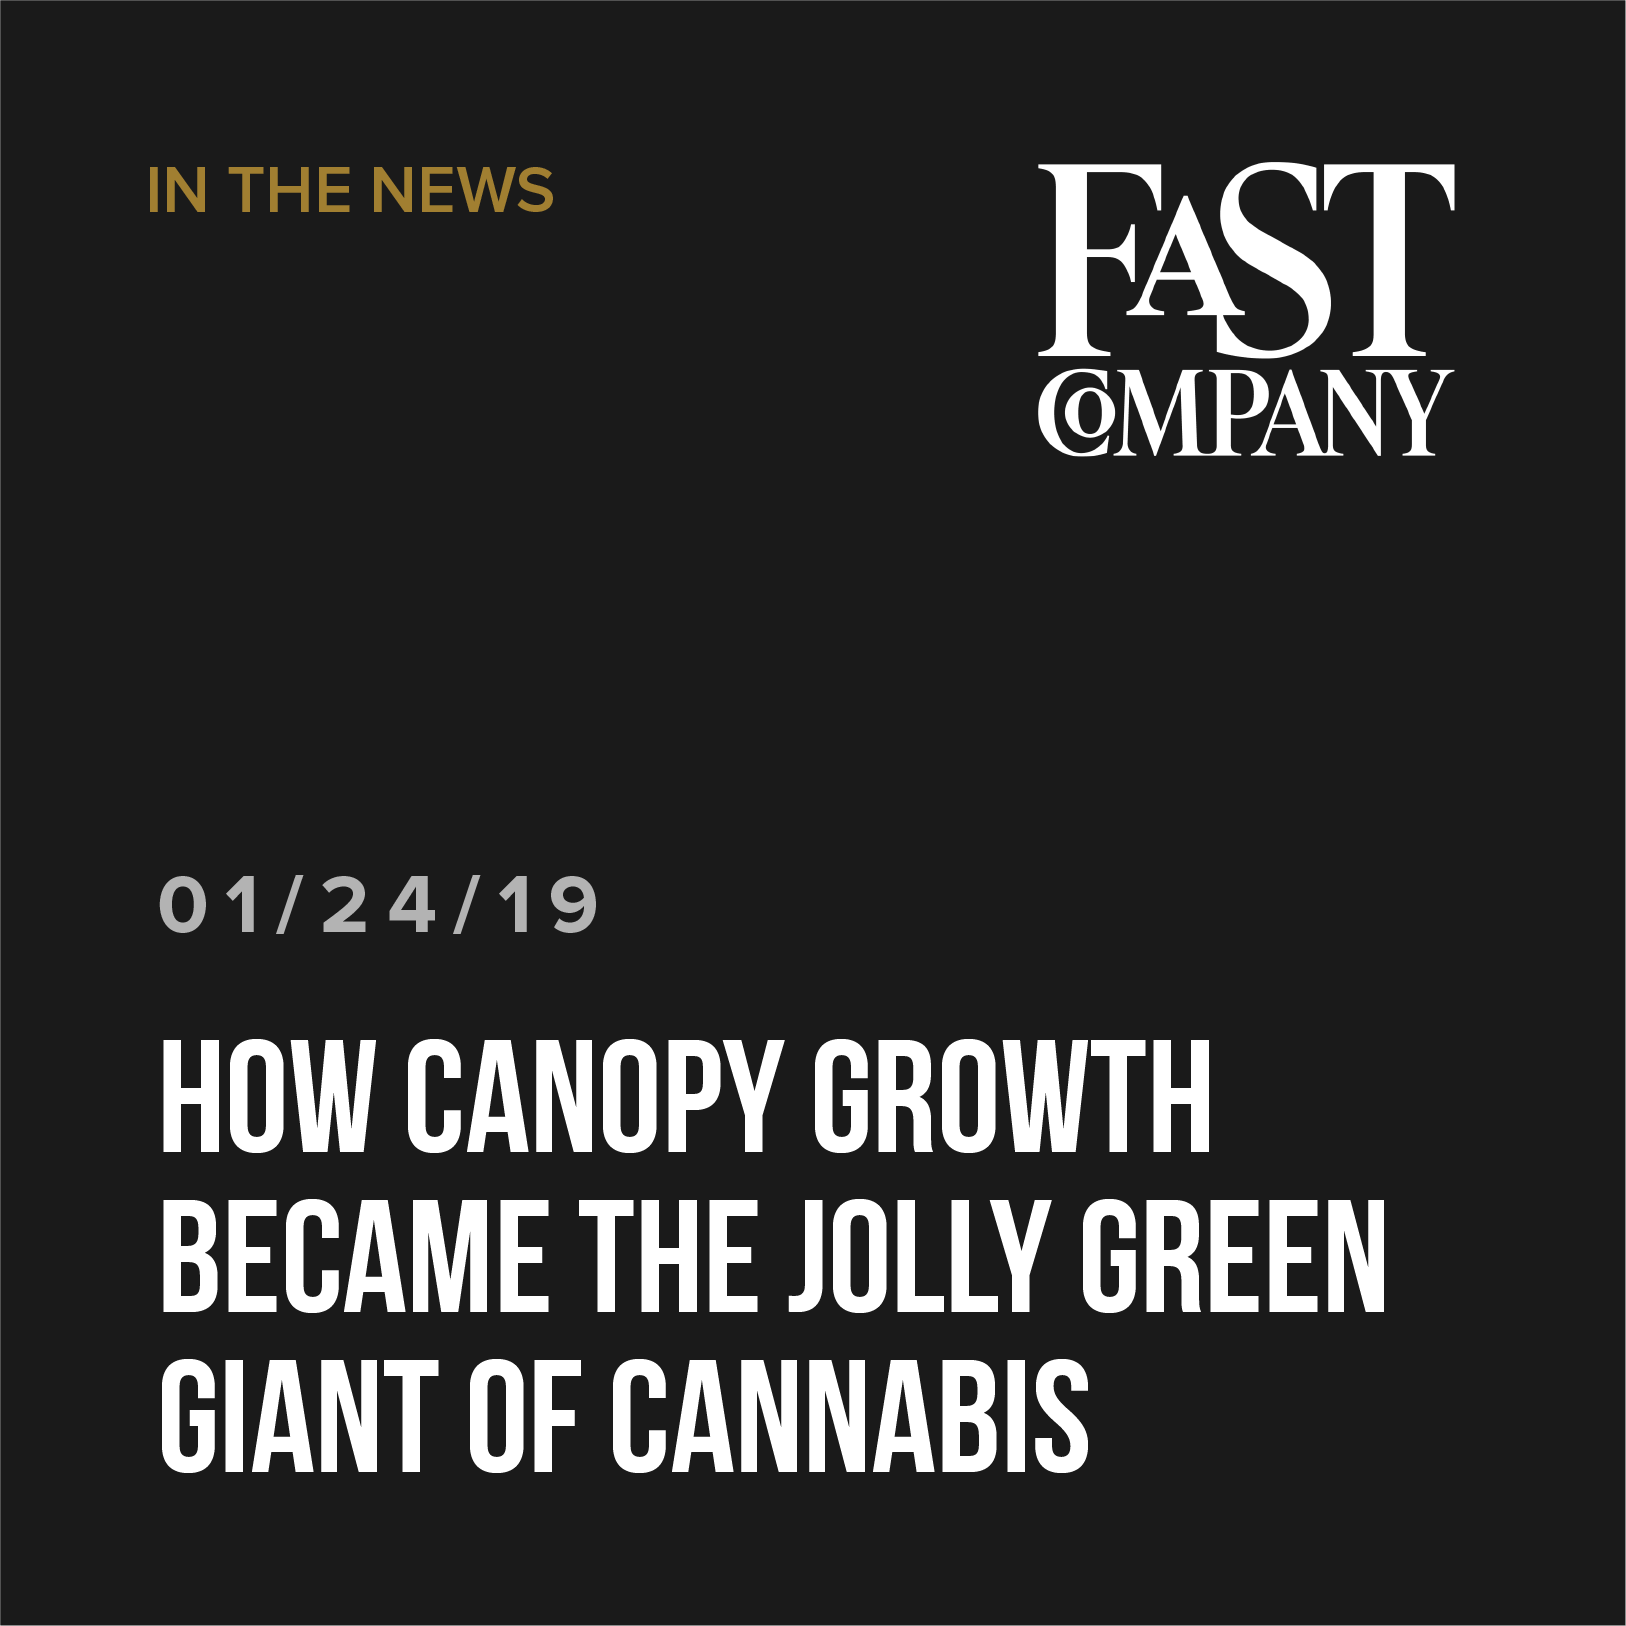 How Canopy Growth became the Jolly Green Giant of cannabis